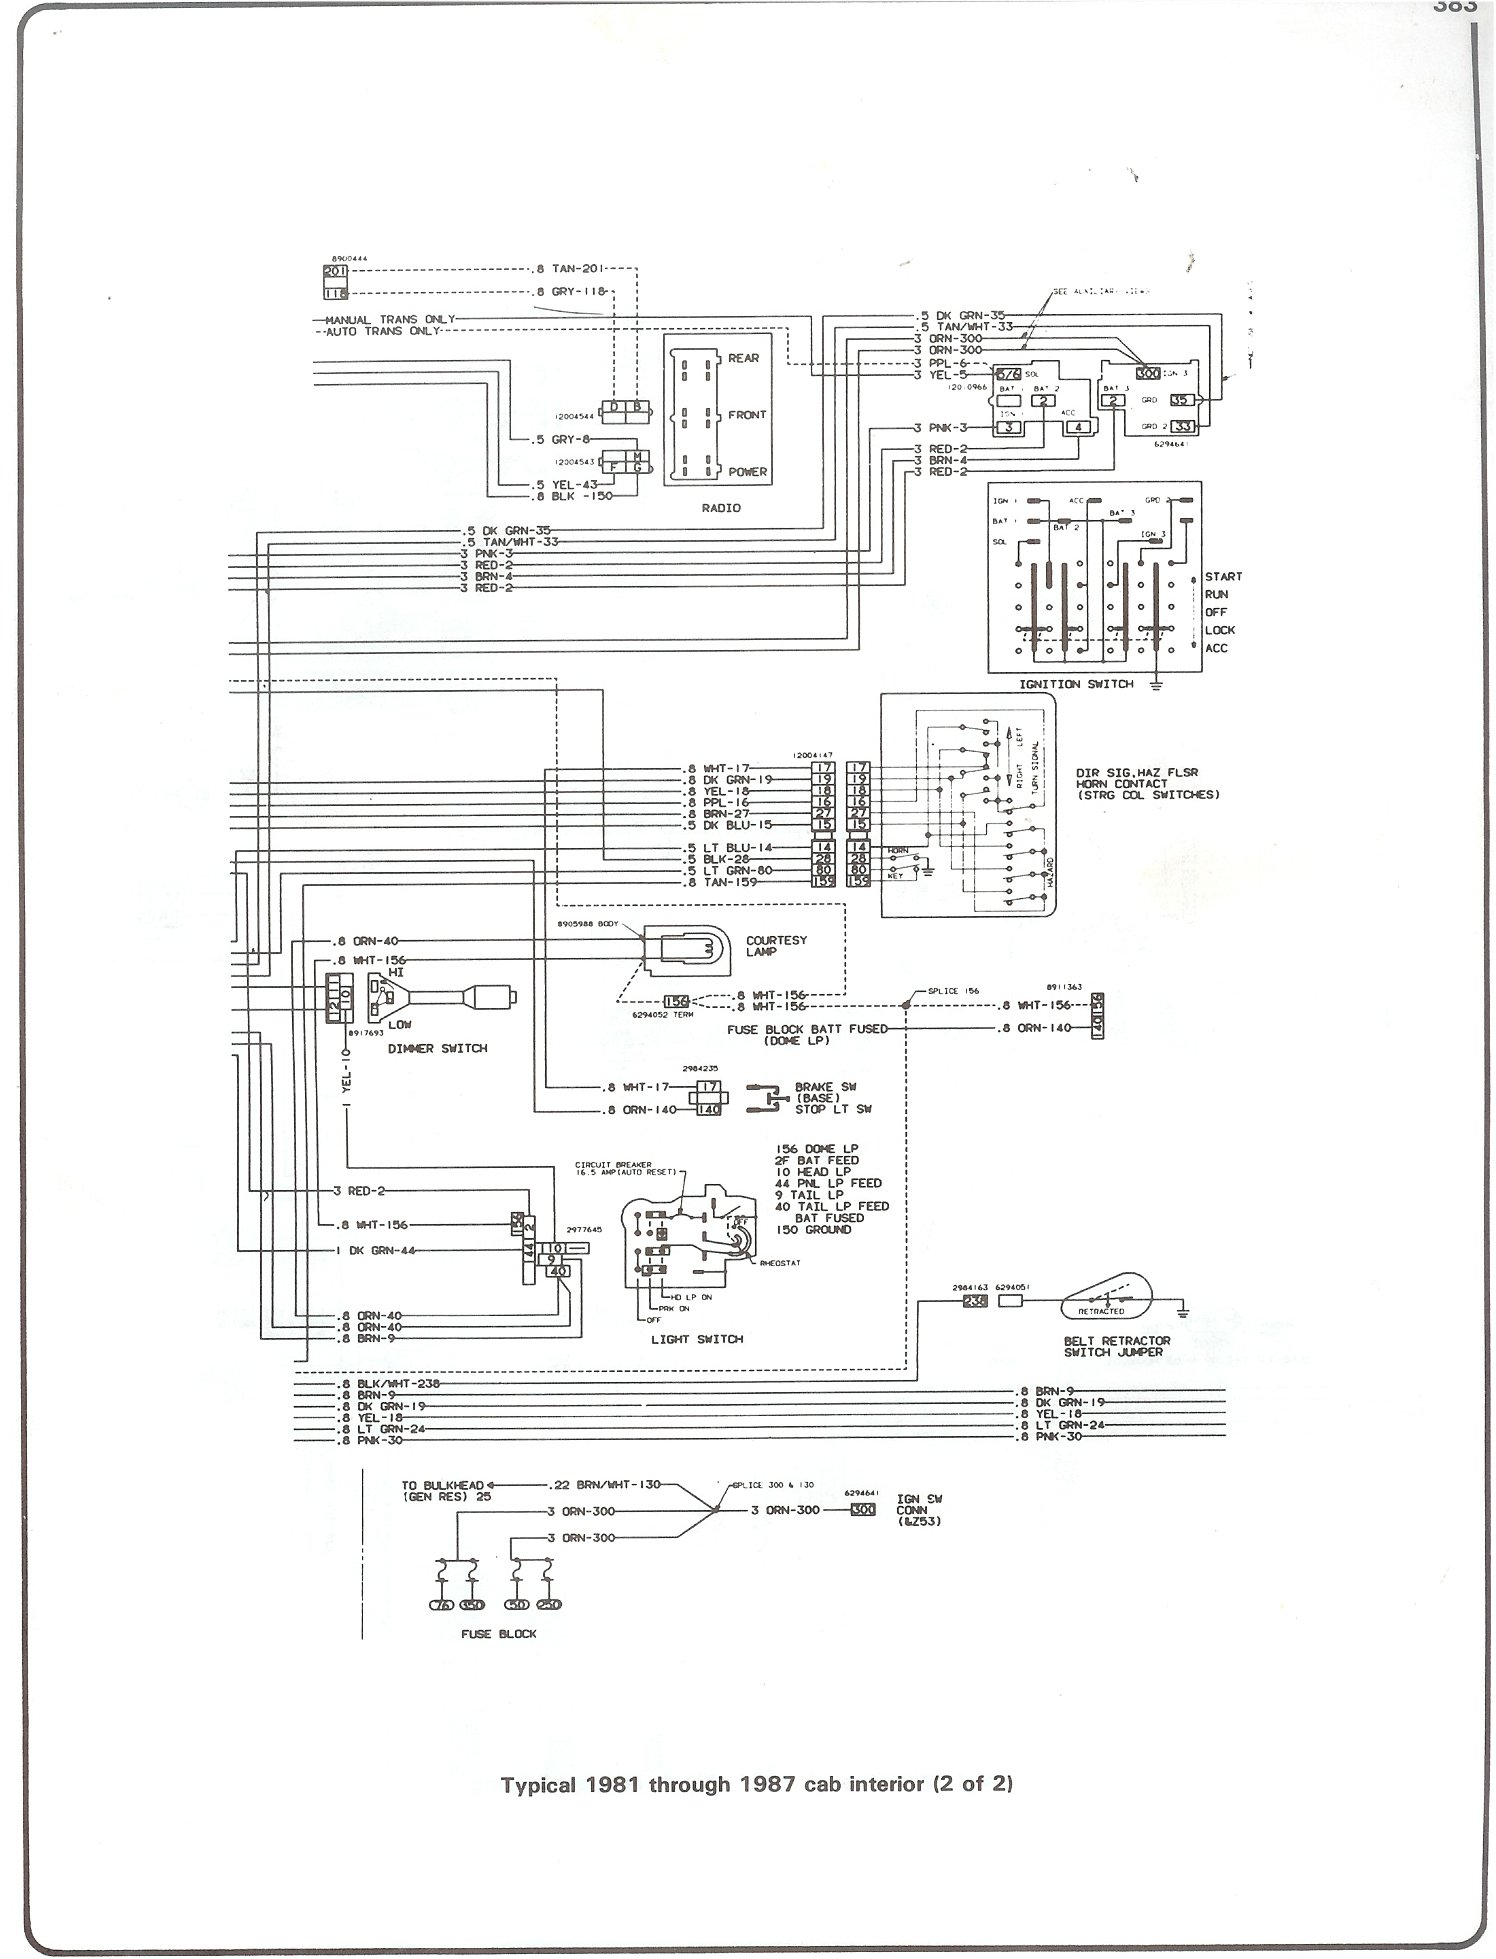 Brake Light Switch Wiring Diagram Blazer Forum Chevy Forums With Schematic 81 87 Cab Interior Page 2